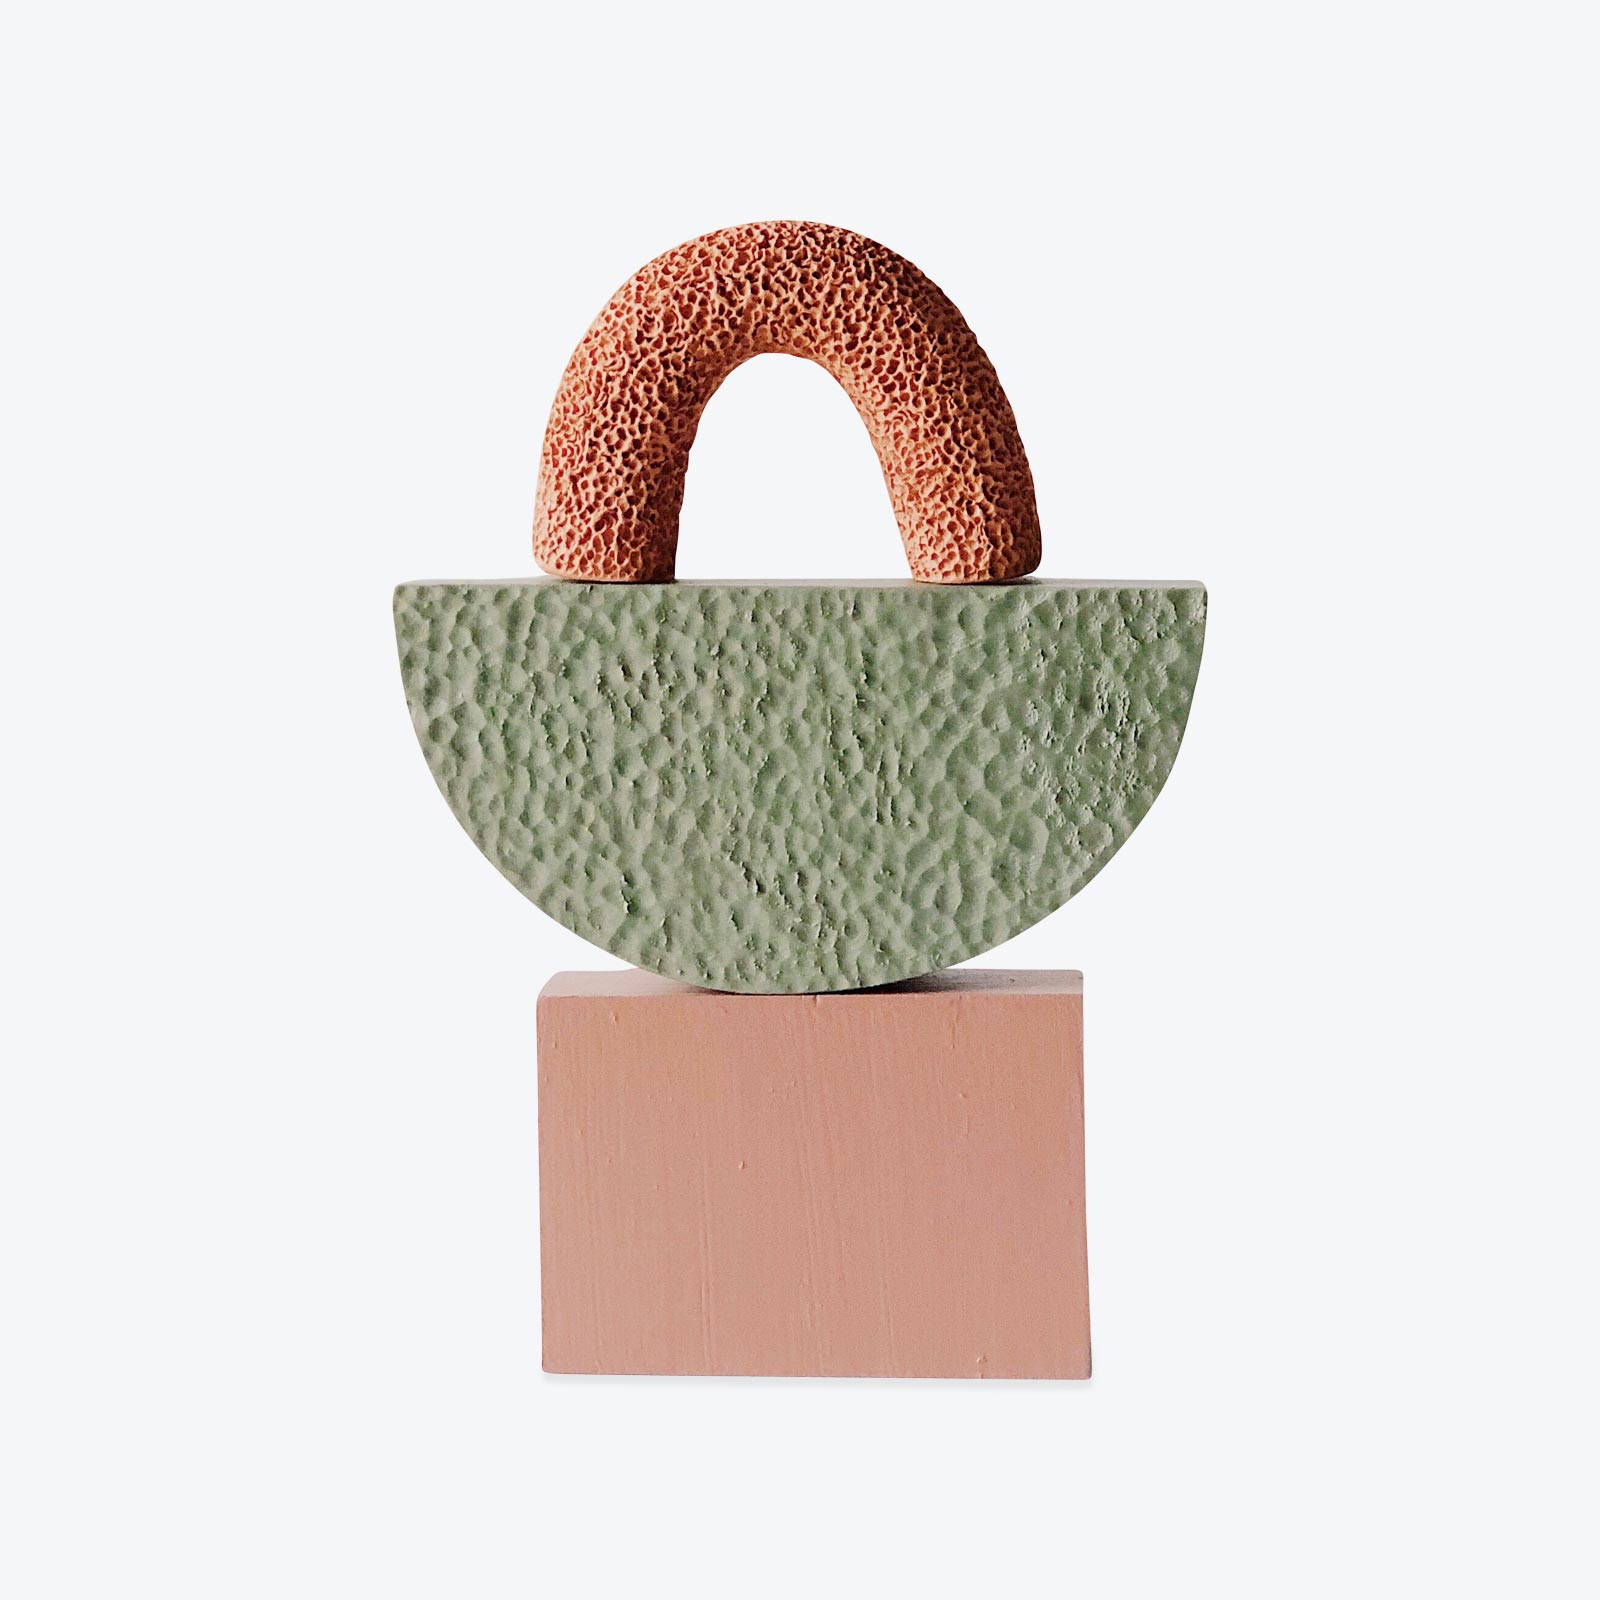 Small Space Sculpture In Terracotta And Timber By Hearth Collective (alichia Van Rhijn) 01